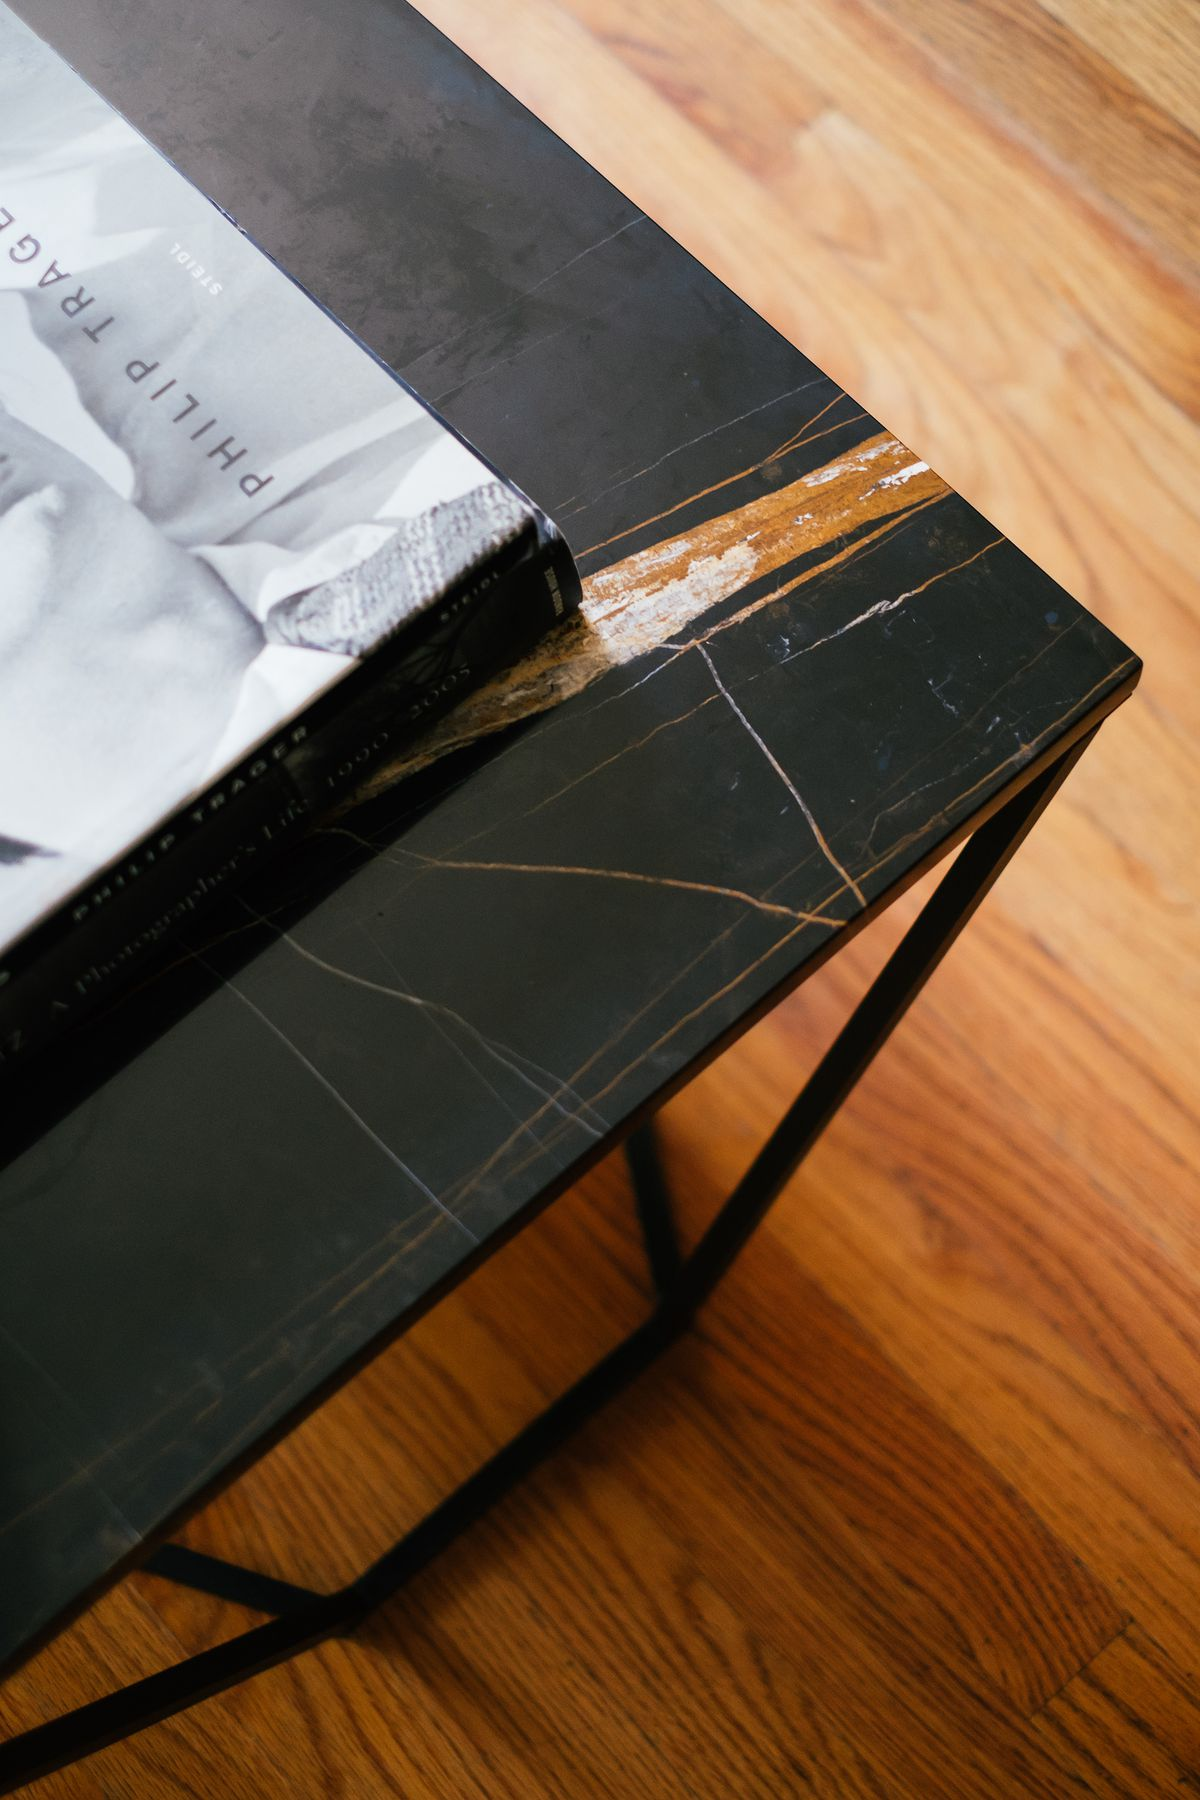 A detail showing the corner of a coffee table with a black metal base and a black marble surface.